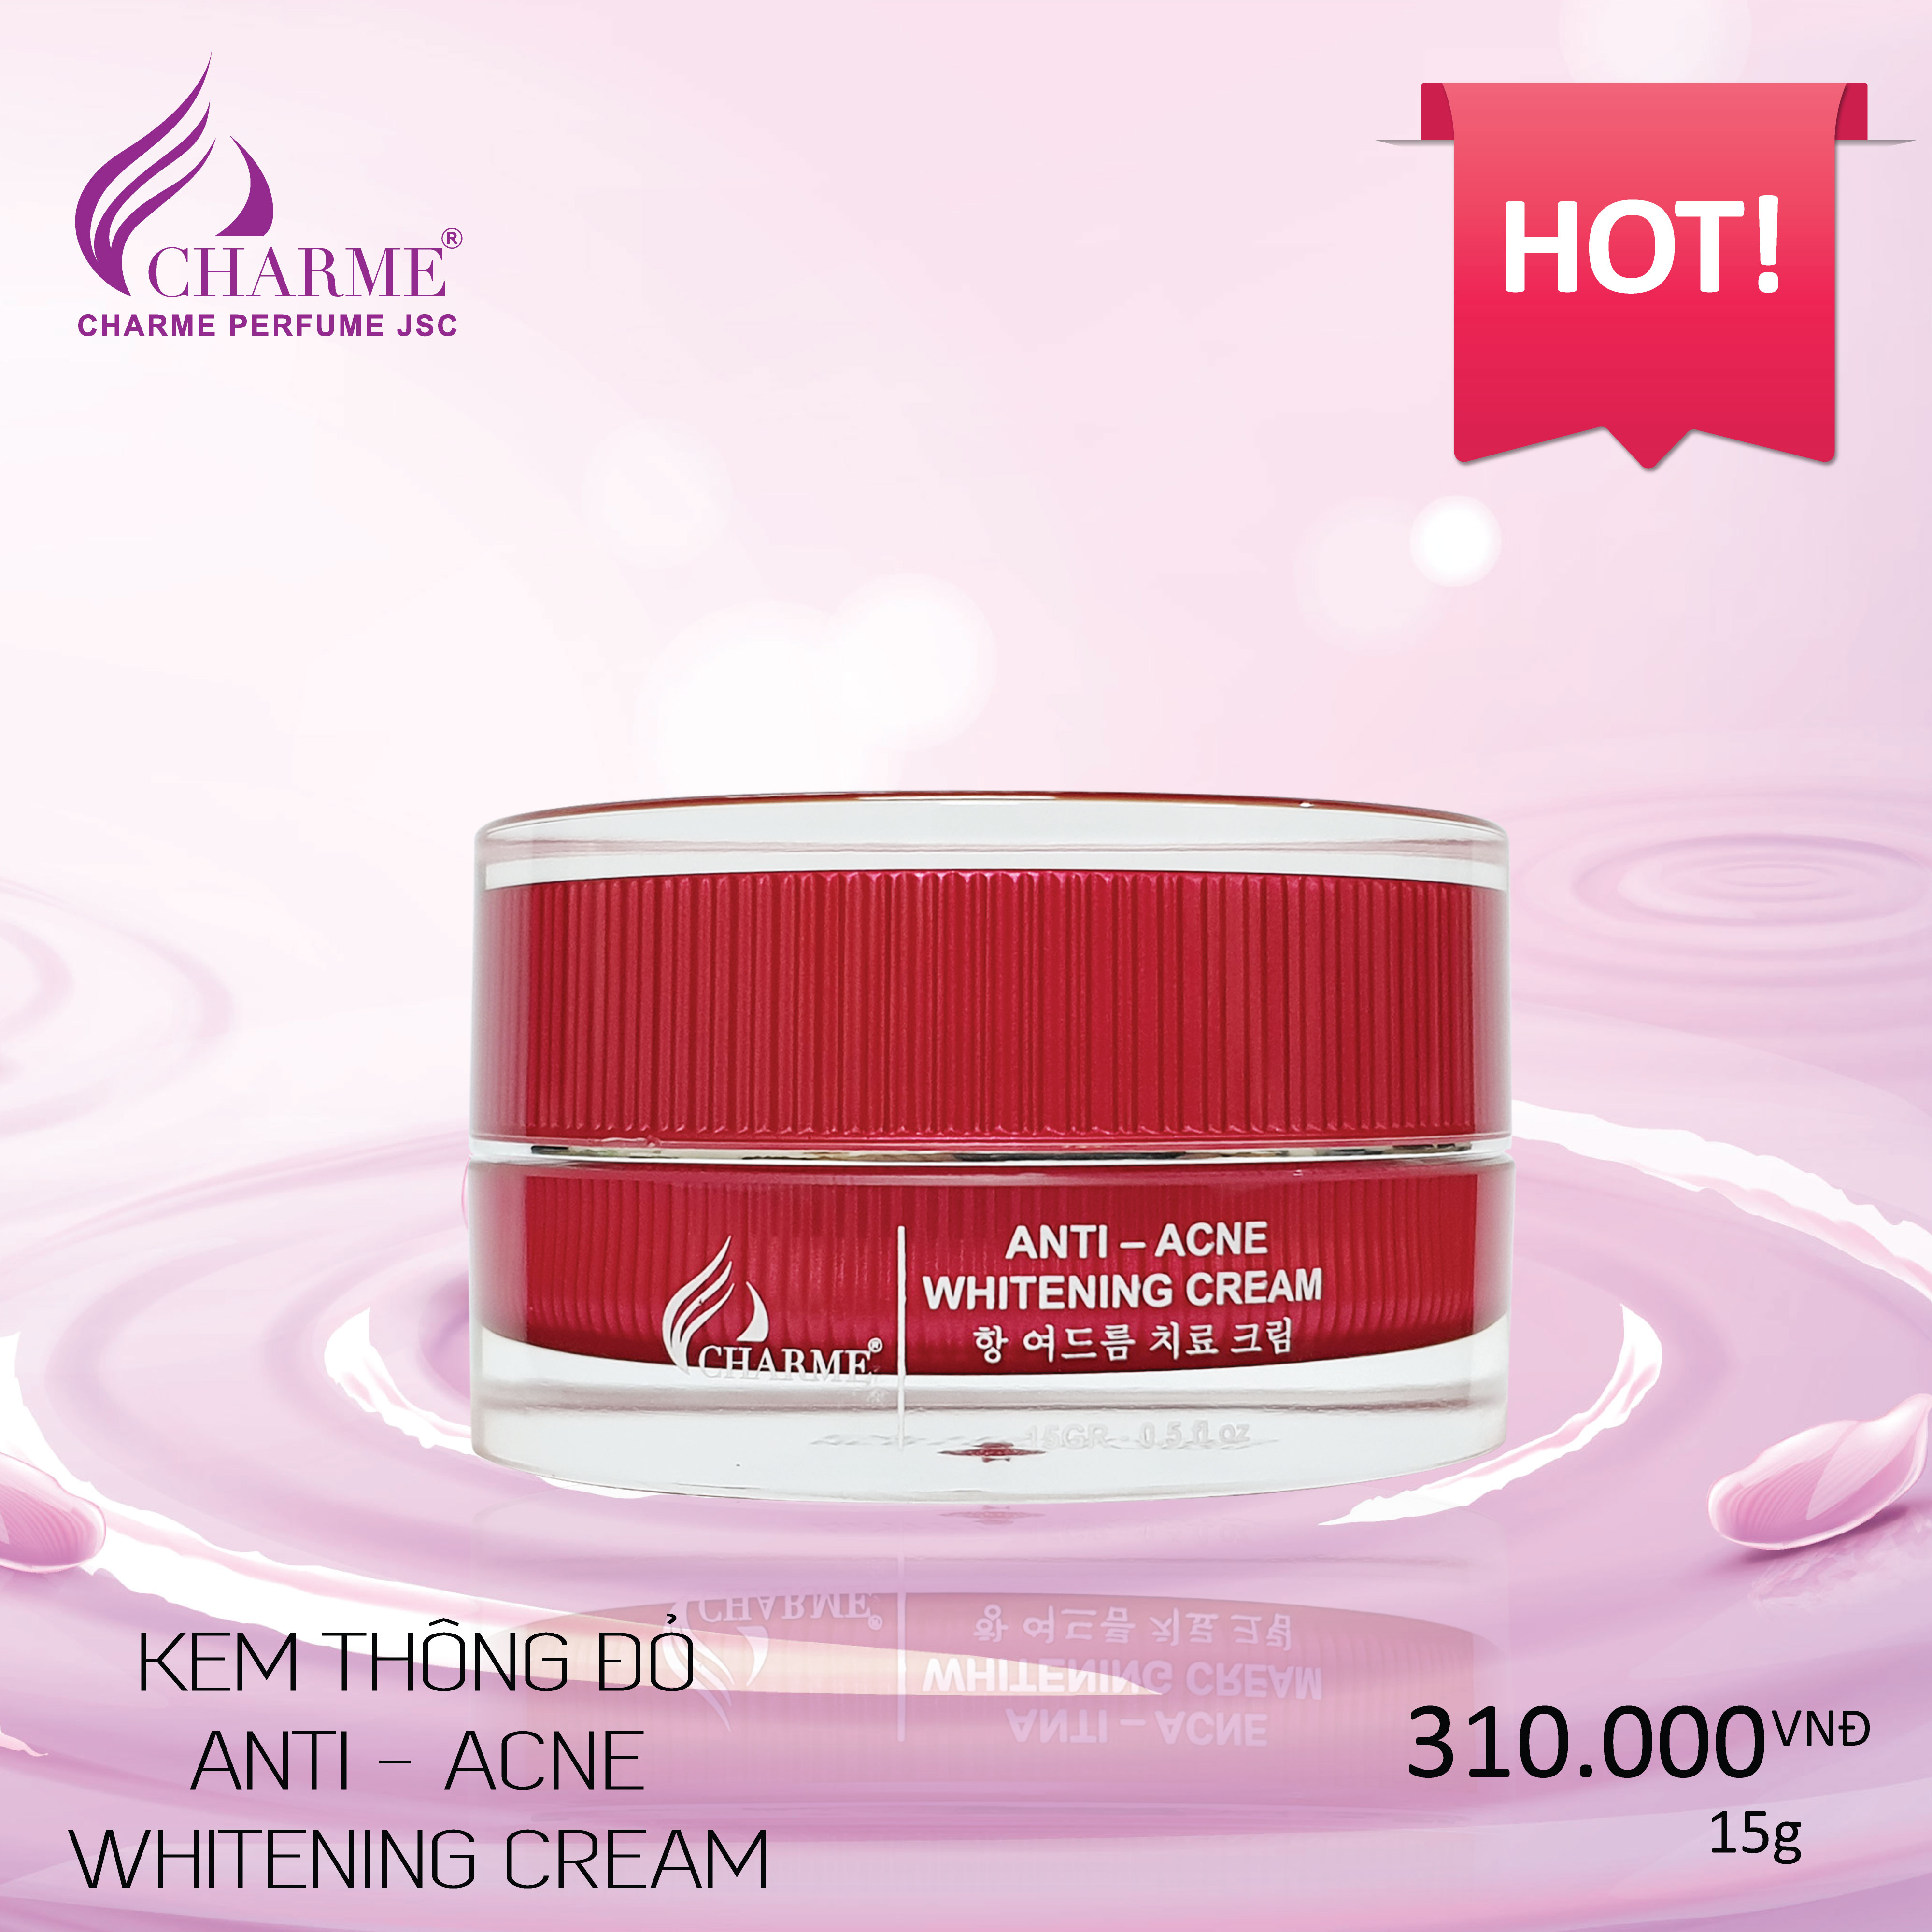 charme-anti-acne-whitening-cream-chinh-hang-han-quoc